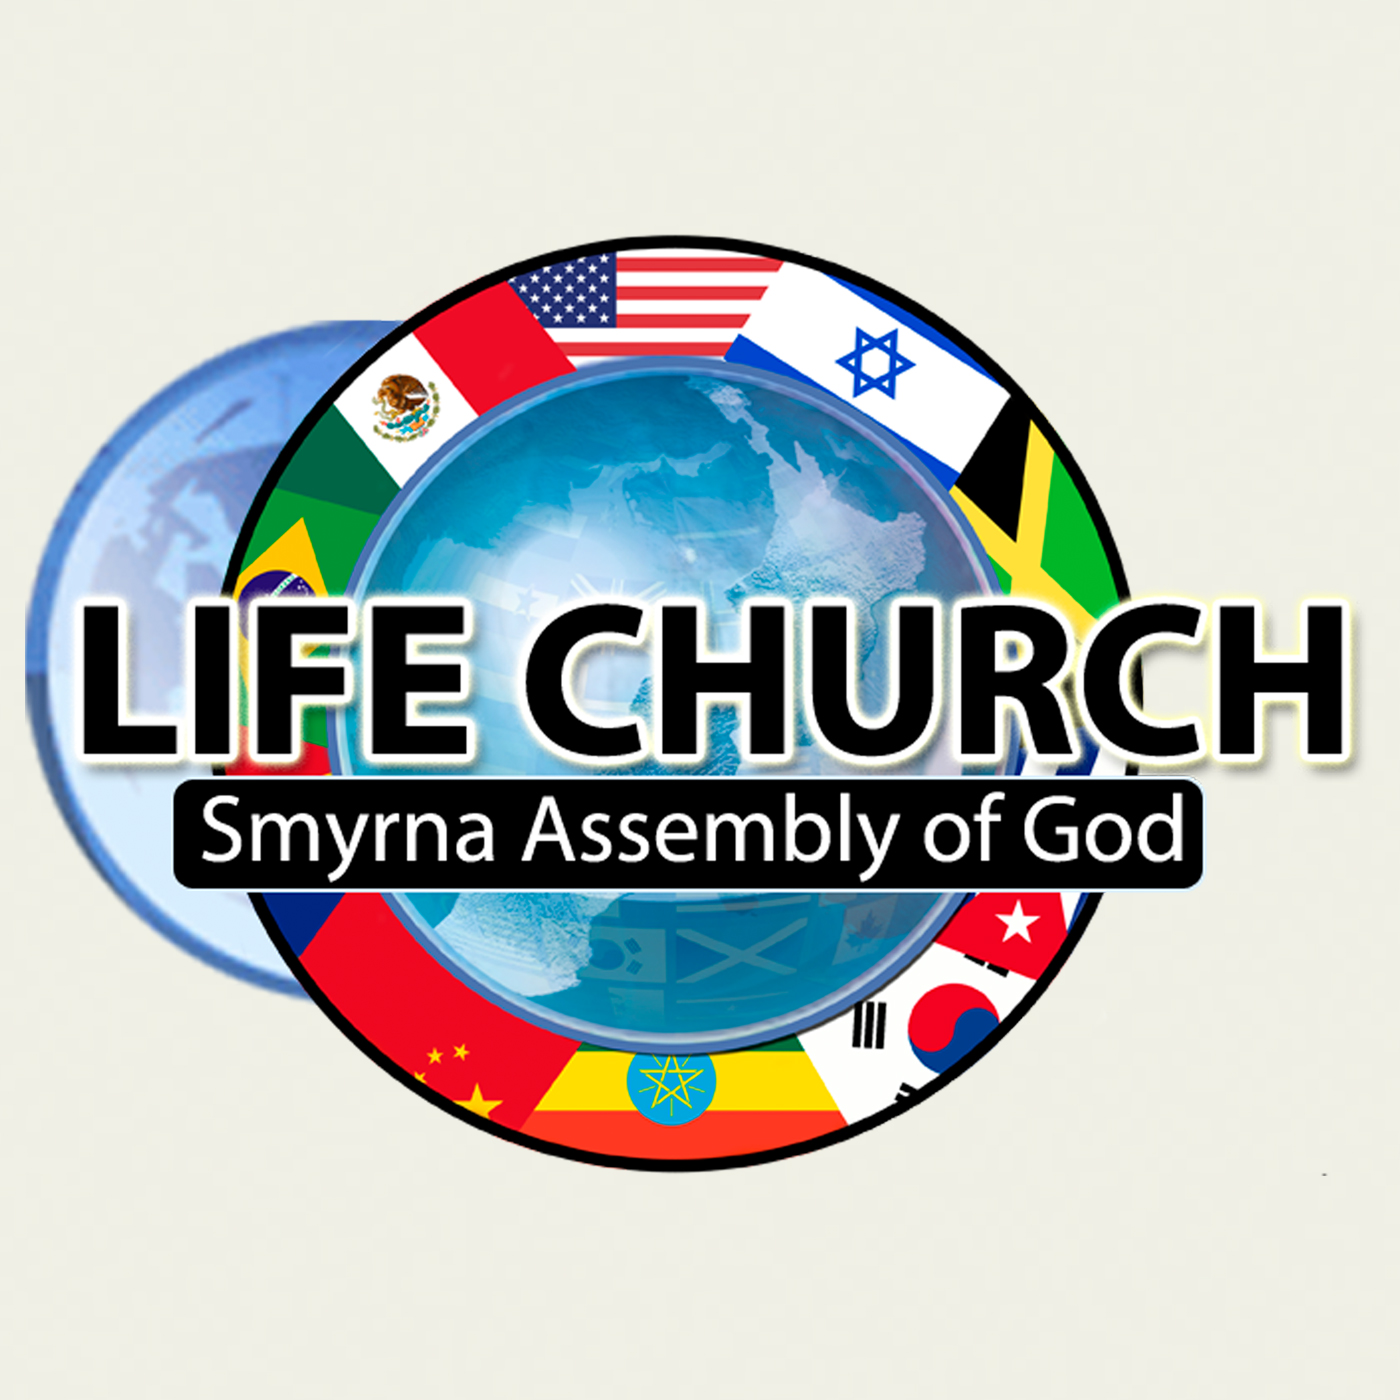 Life Church: Smyrna Assembly of God